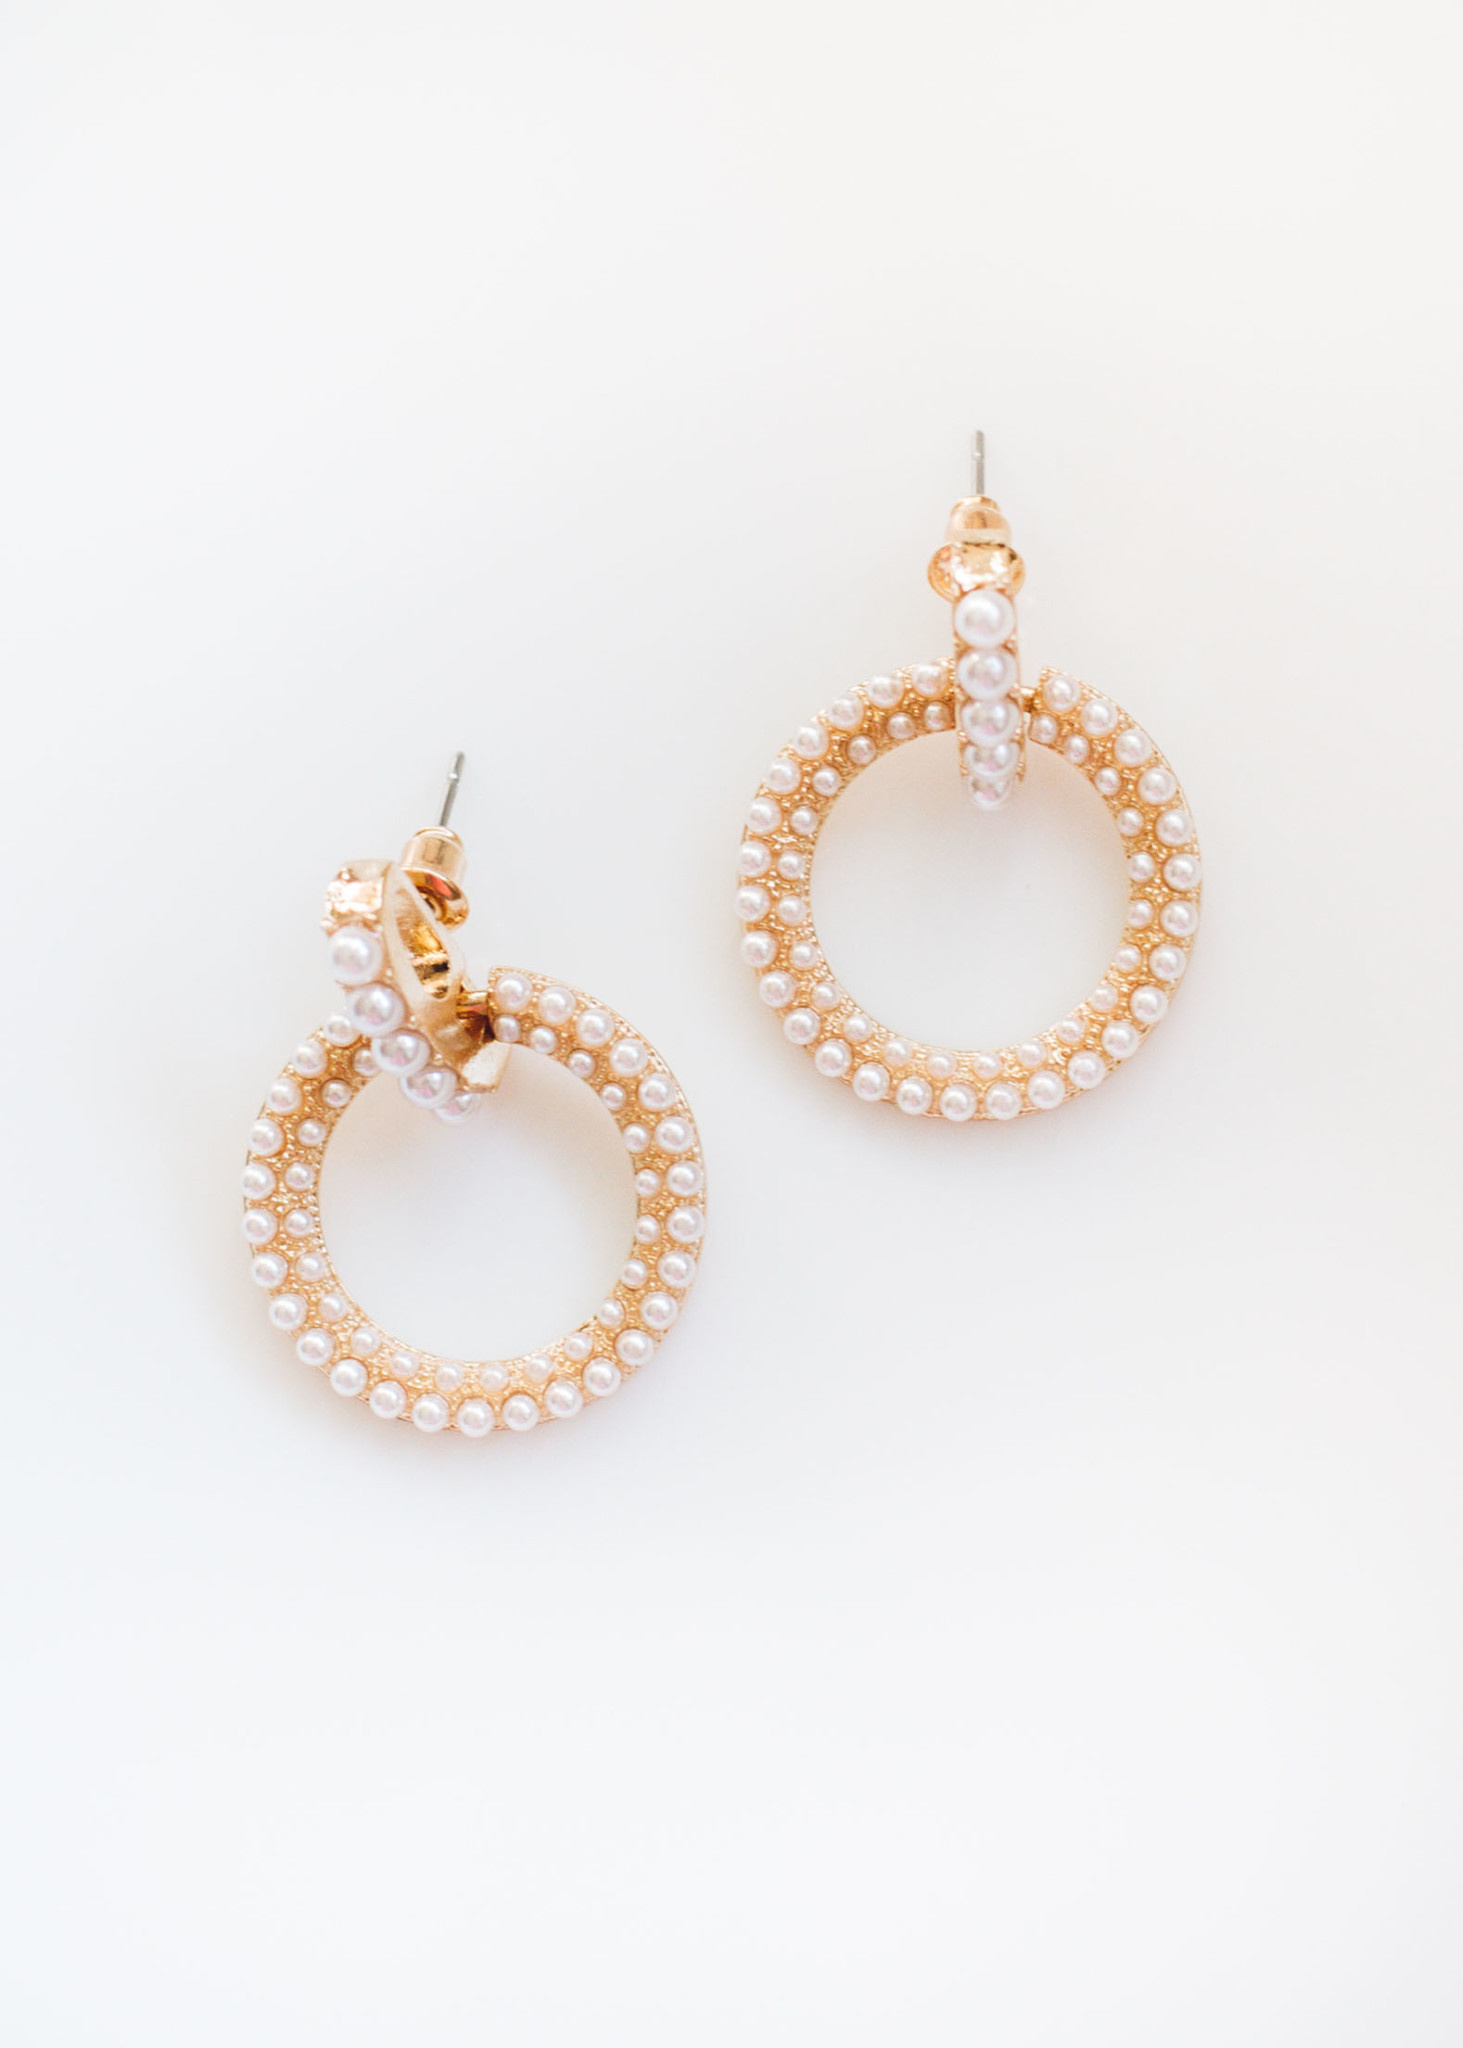 WITHIN REACH PEARL EARRINGS